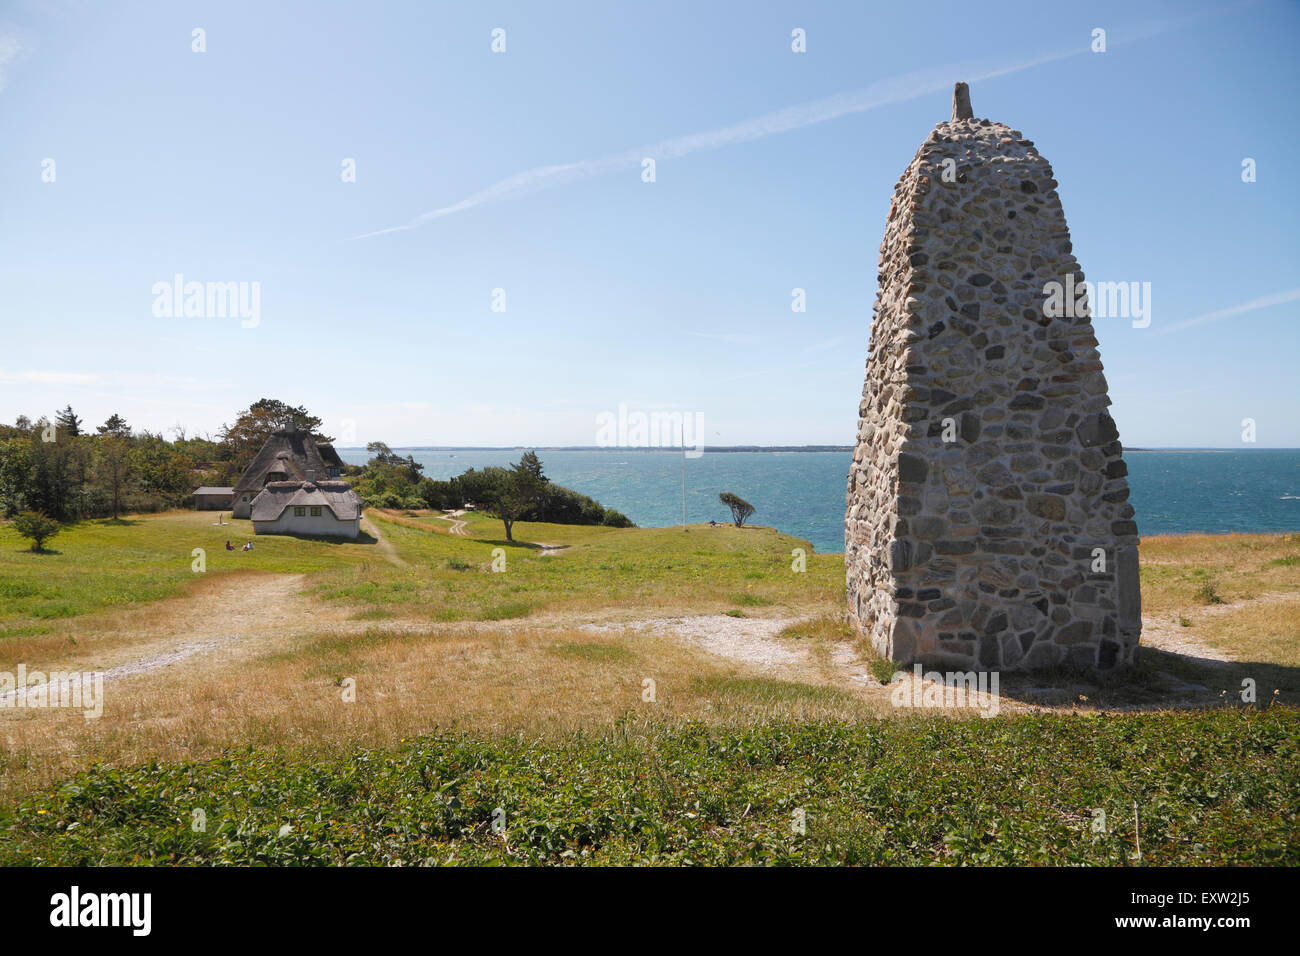 The memorial rock cairn and Knud Rasmussen's house on the cliff Spodsbjerg at Hundested, North Sealand, Denmark. Stock Photo